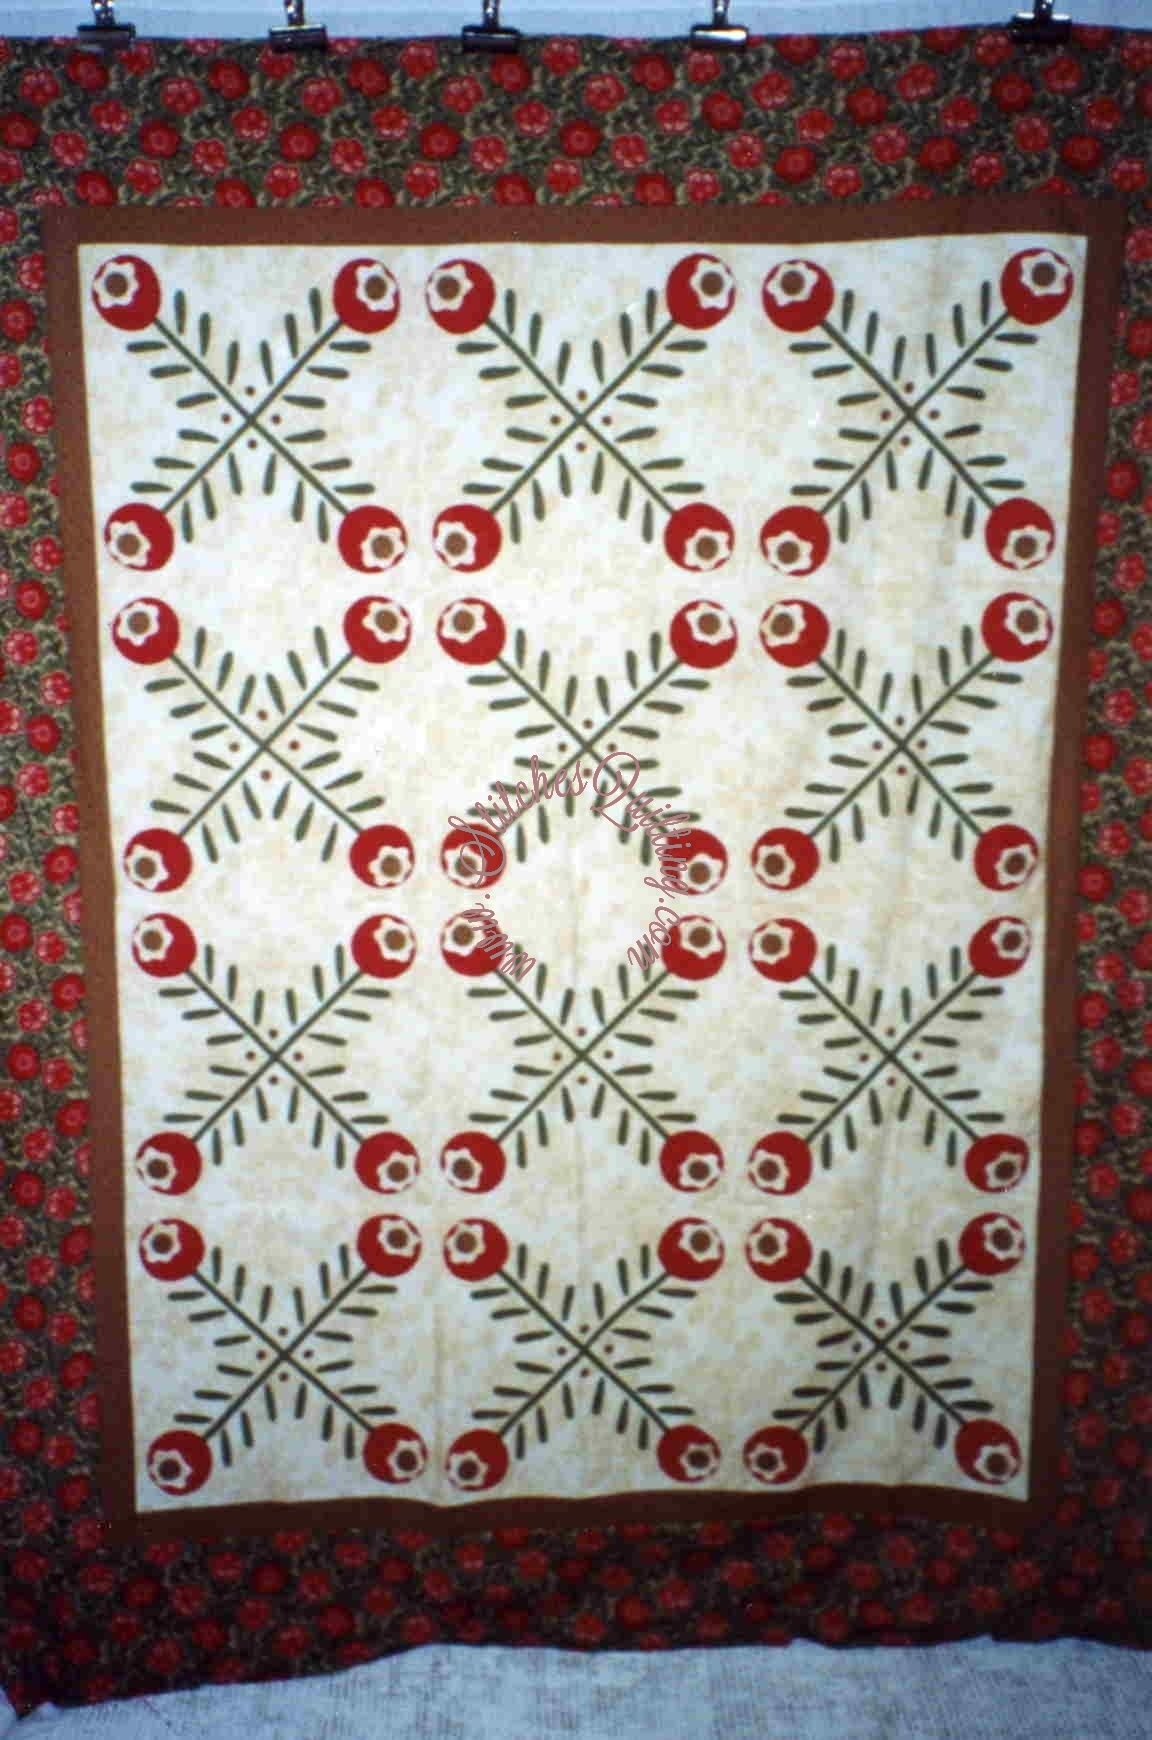 Willing Hs Sewing Circle Christmas Quilt Pattern Robyn